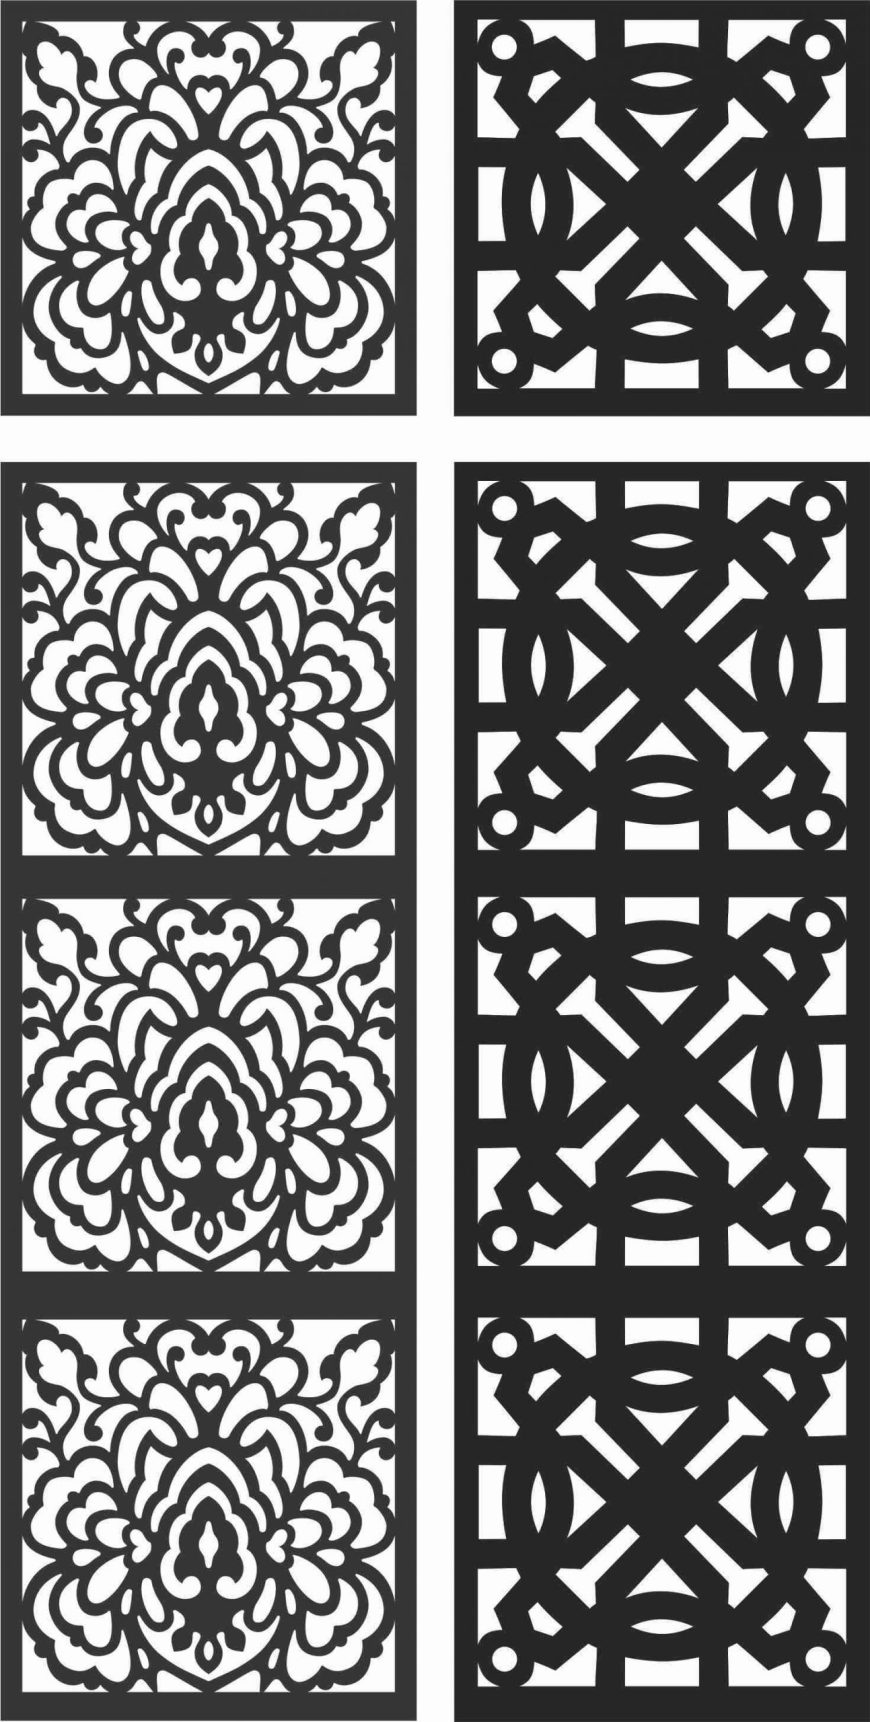 Floral Screen Patterns Design 118 Free DXF File